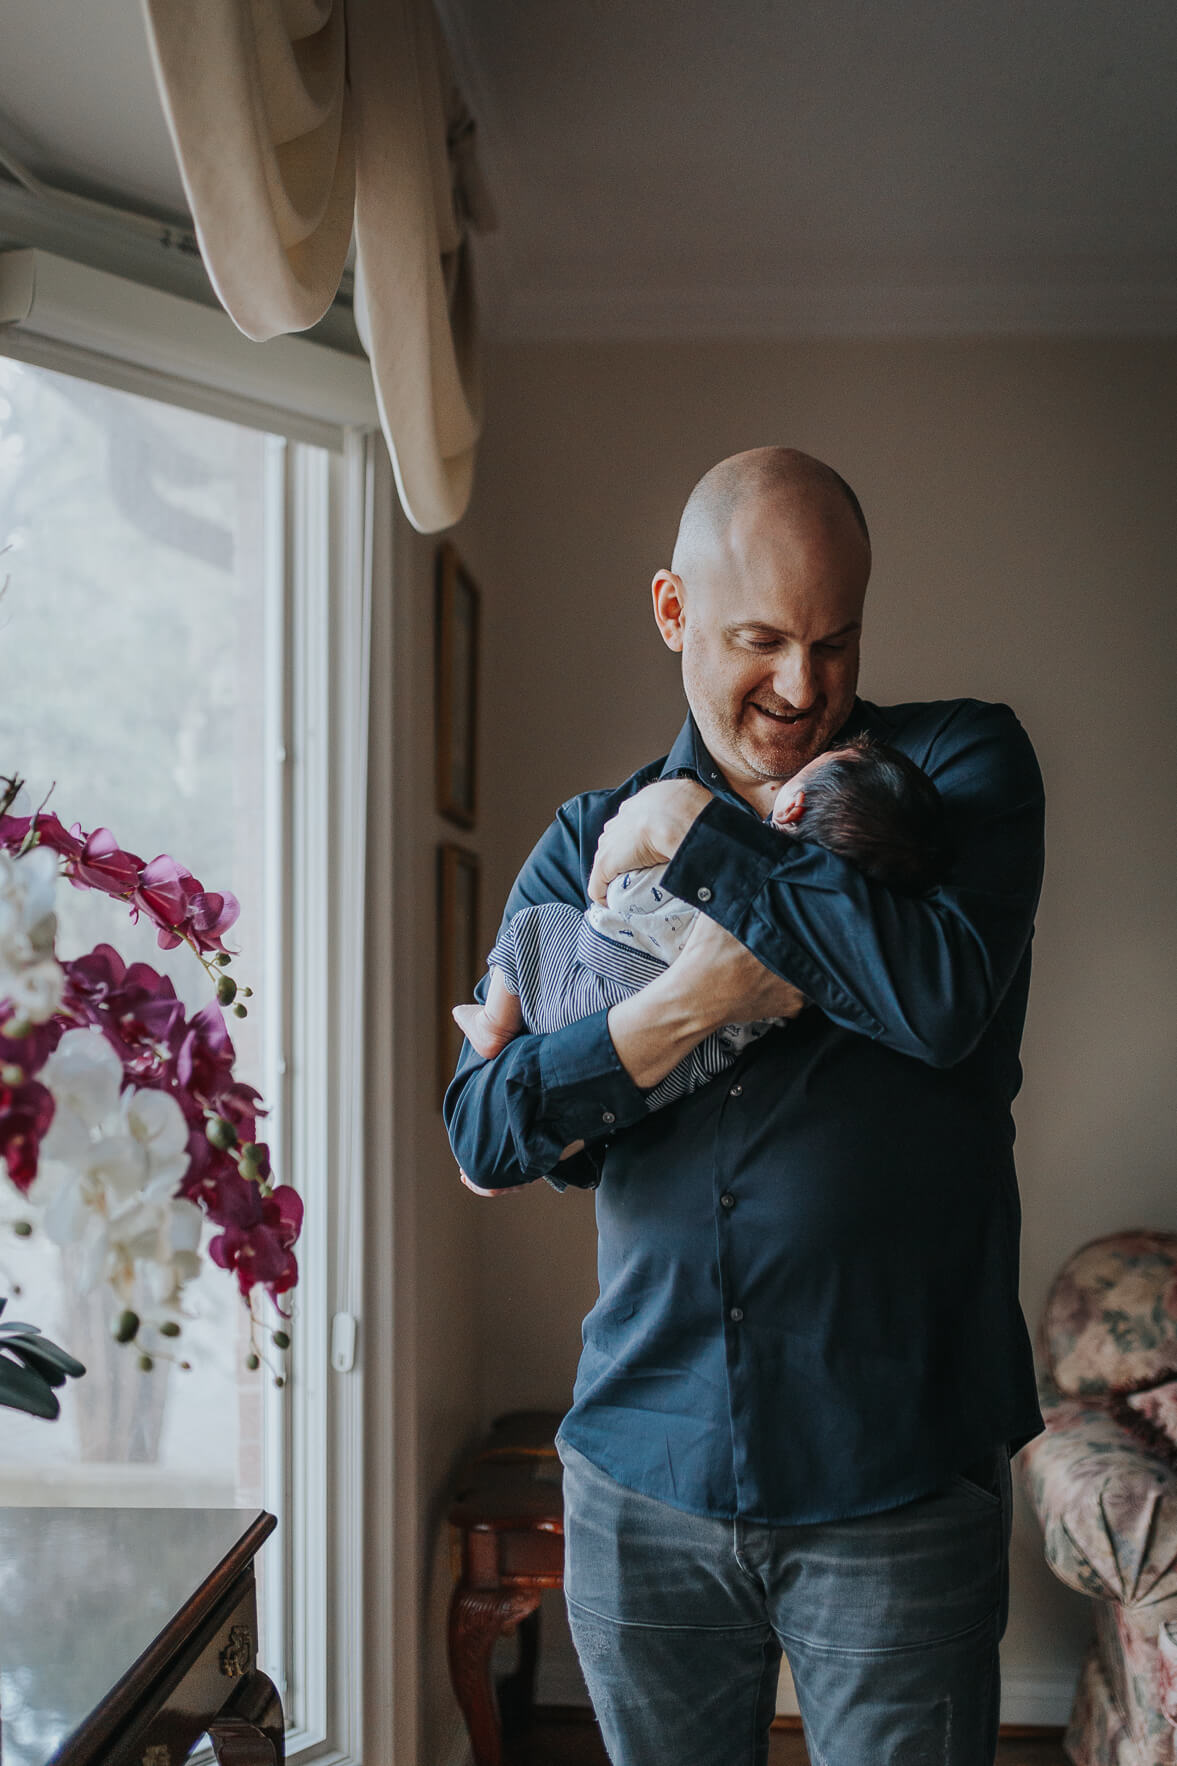 New dad holding his infant son near the window of a Toronto house.